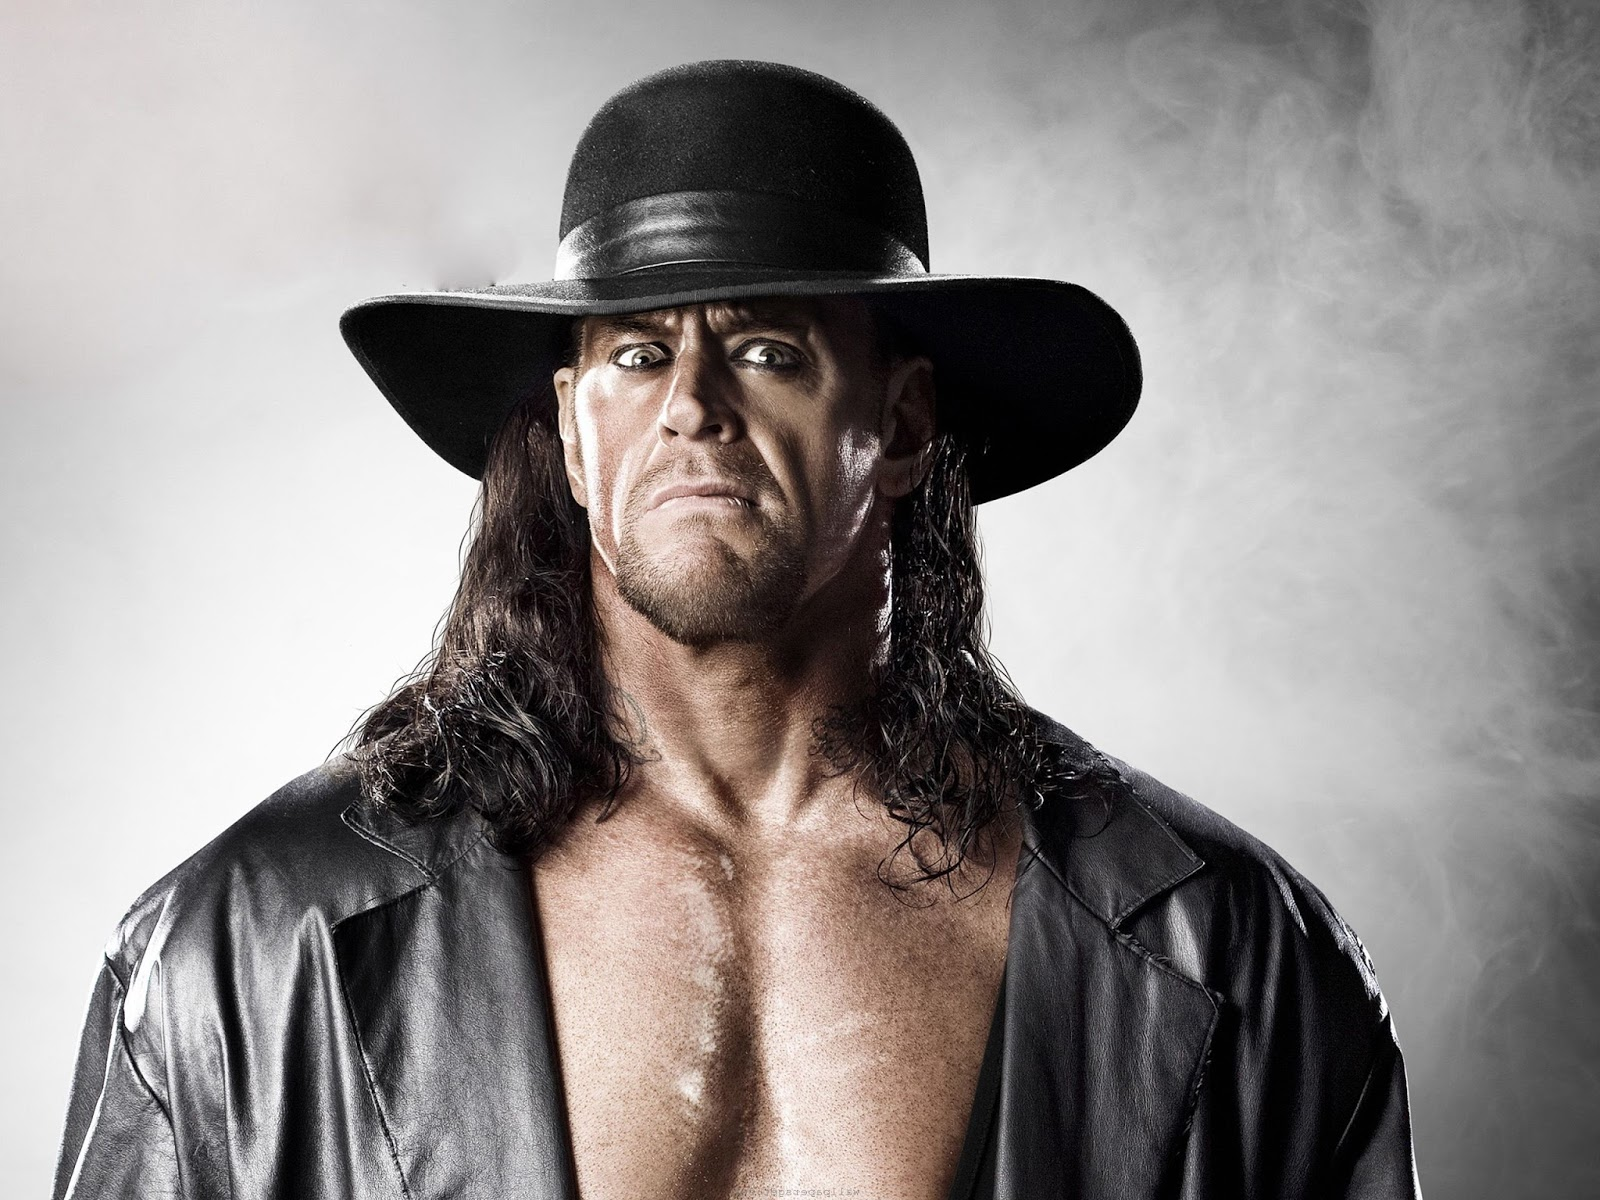 Undertaker To Retire From The WWE After His Match With Roman Reign In WrestleMania 33.